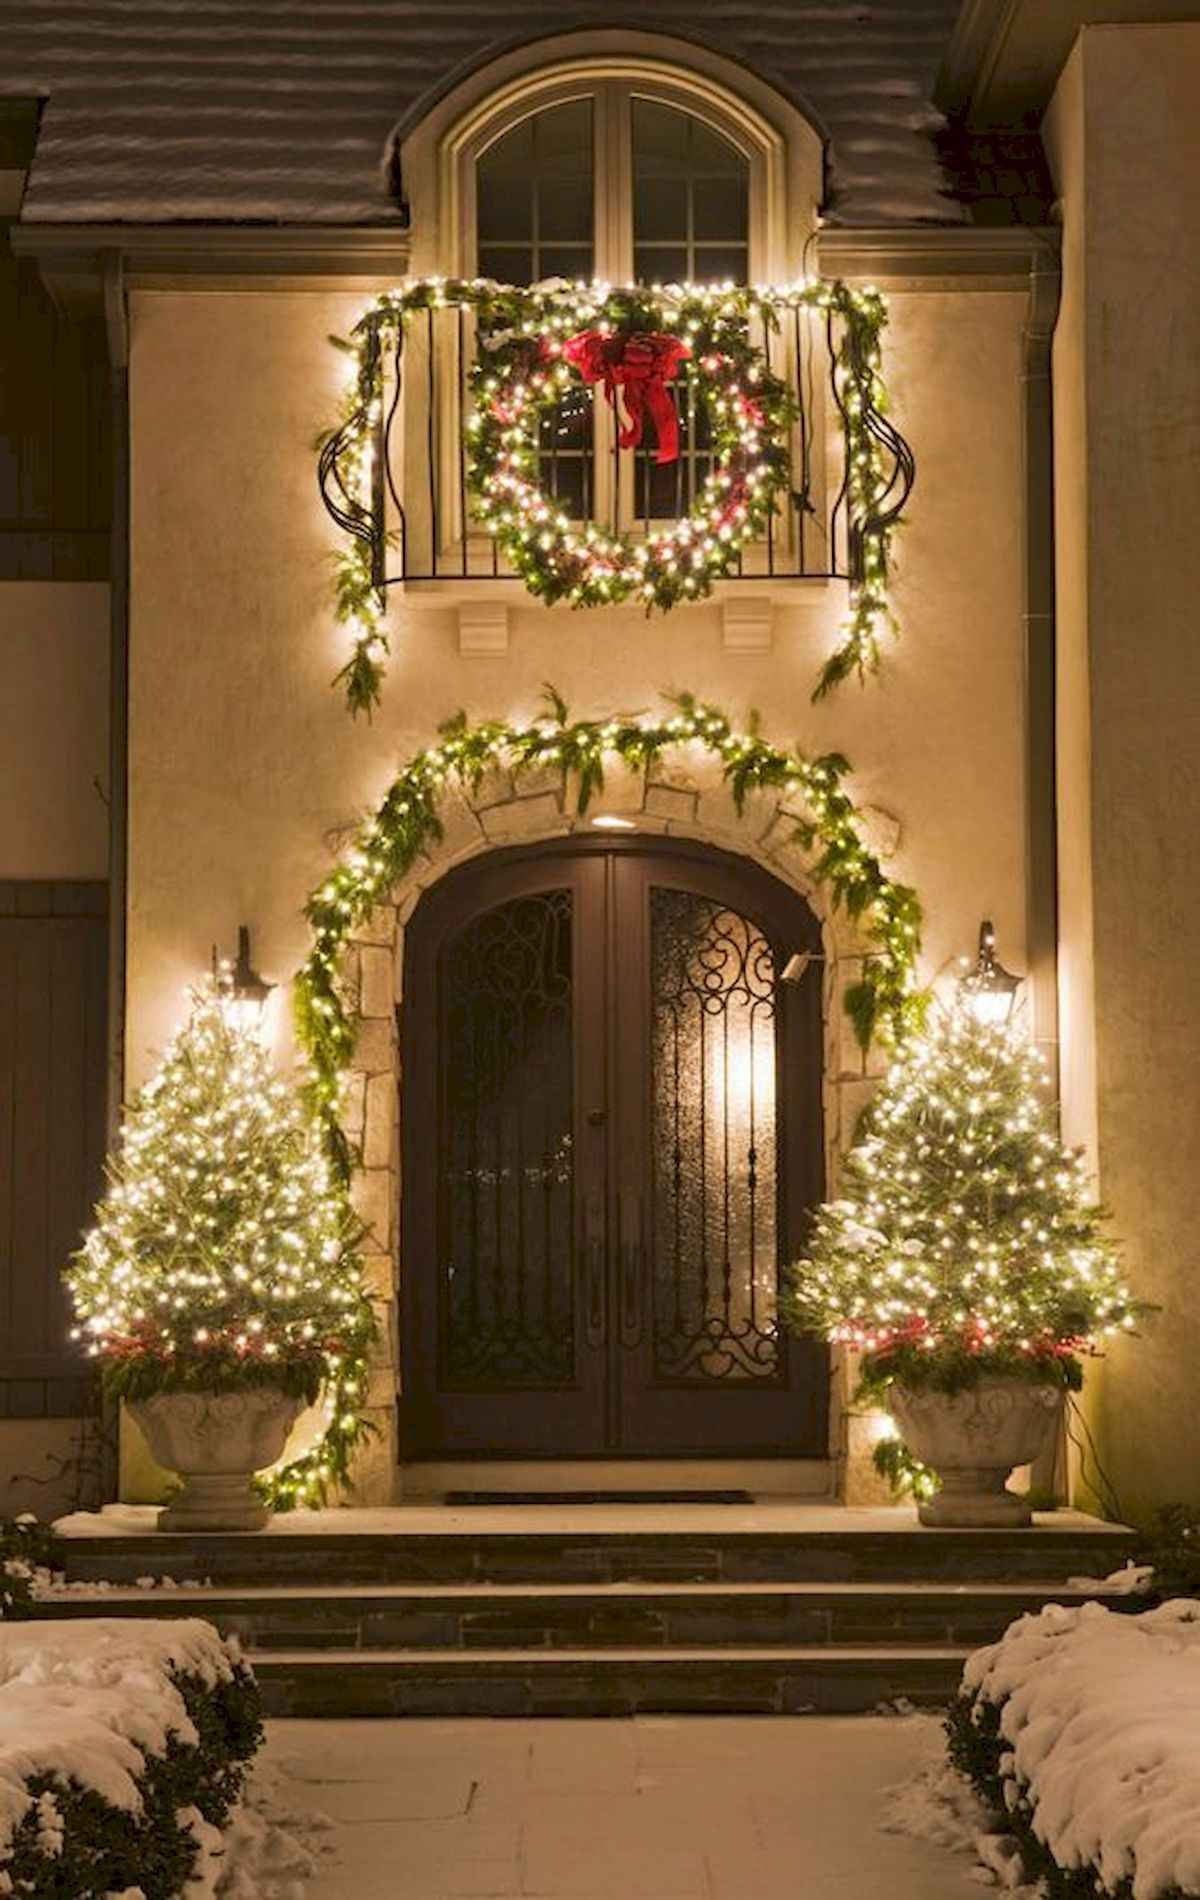 50 stunning front porch christmas lights decorations ideas (39)